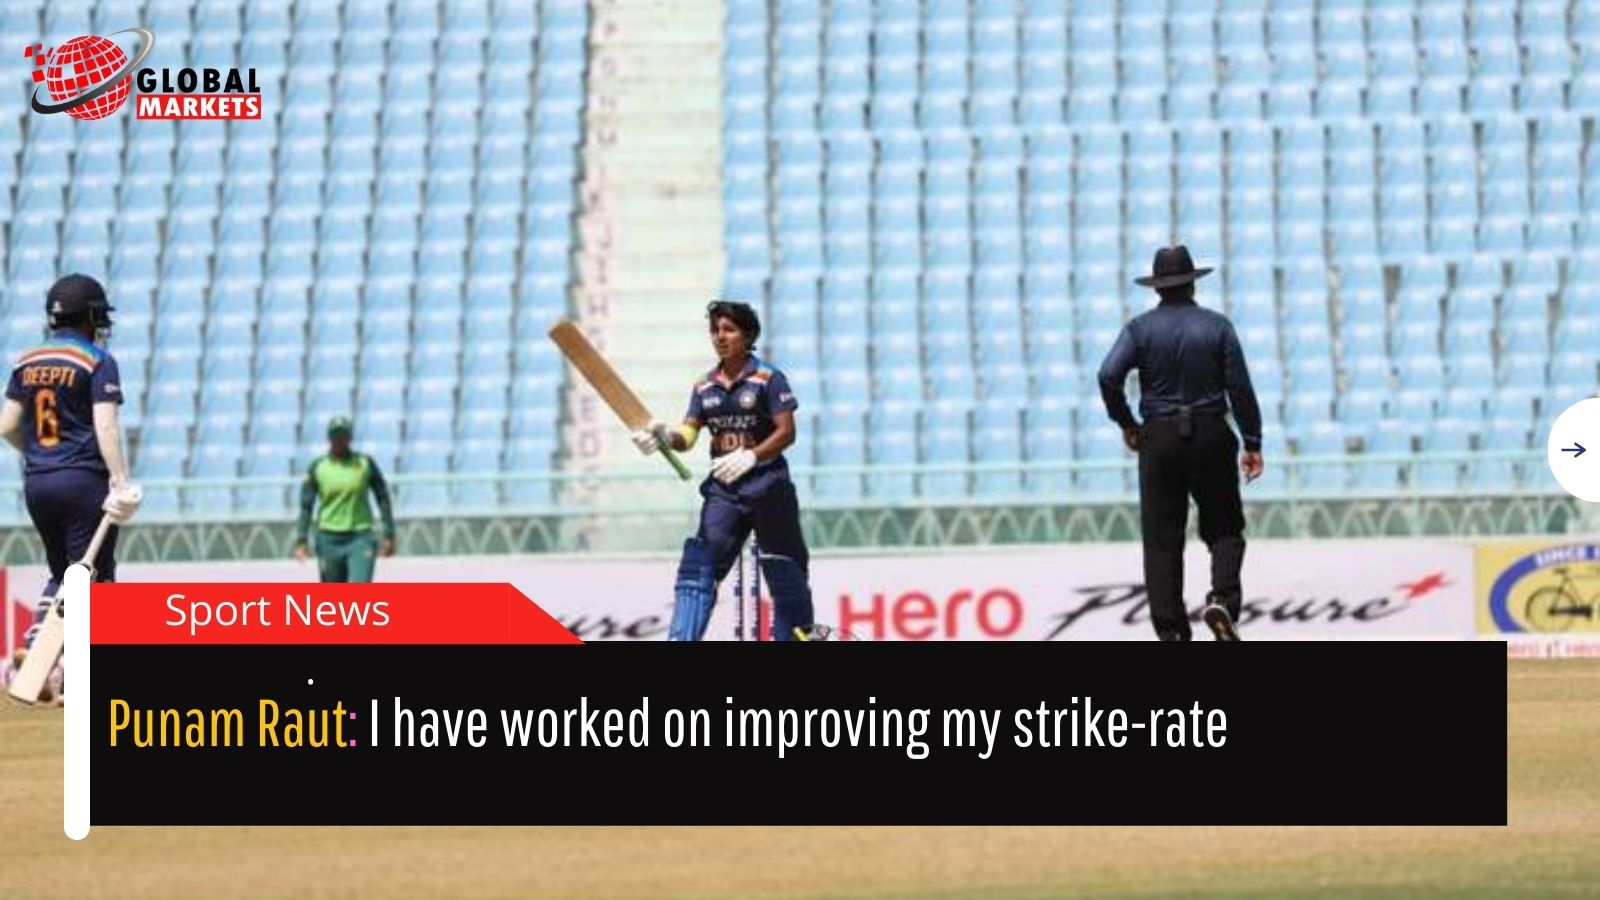 Punam Raut: I have worked on improving my strike-rate